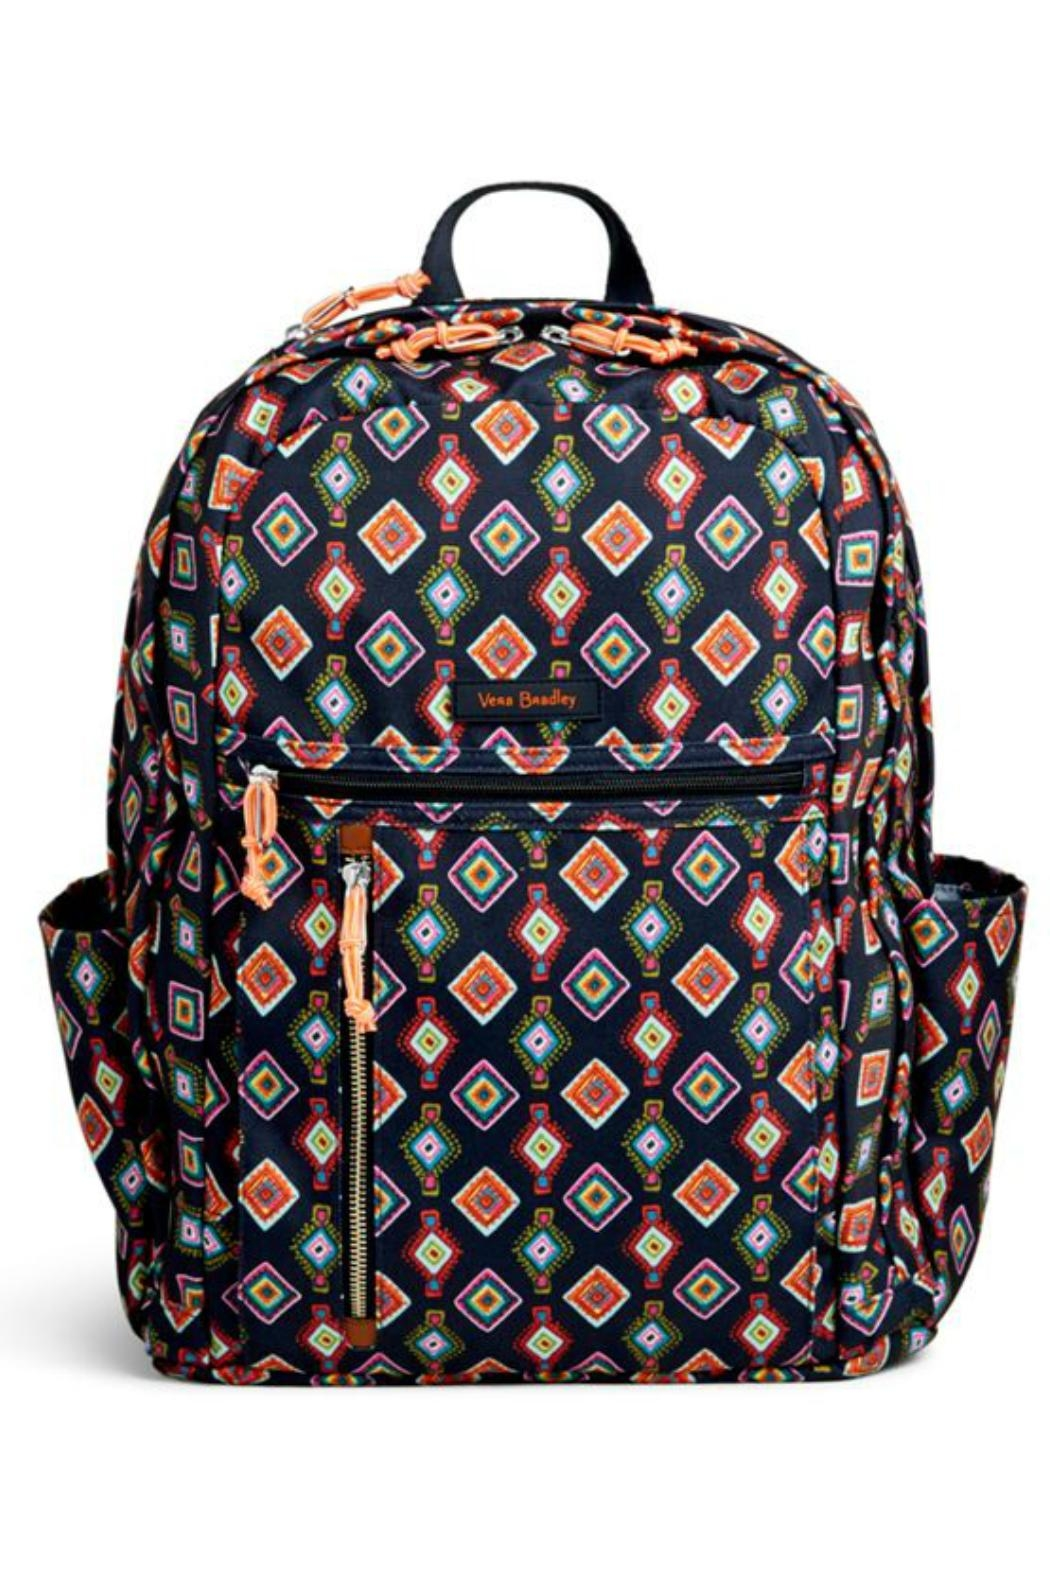 49745ac21 Vera Bradley Mini-Medallions Laptop Backpack from Kentucky by Mimi's ...